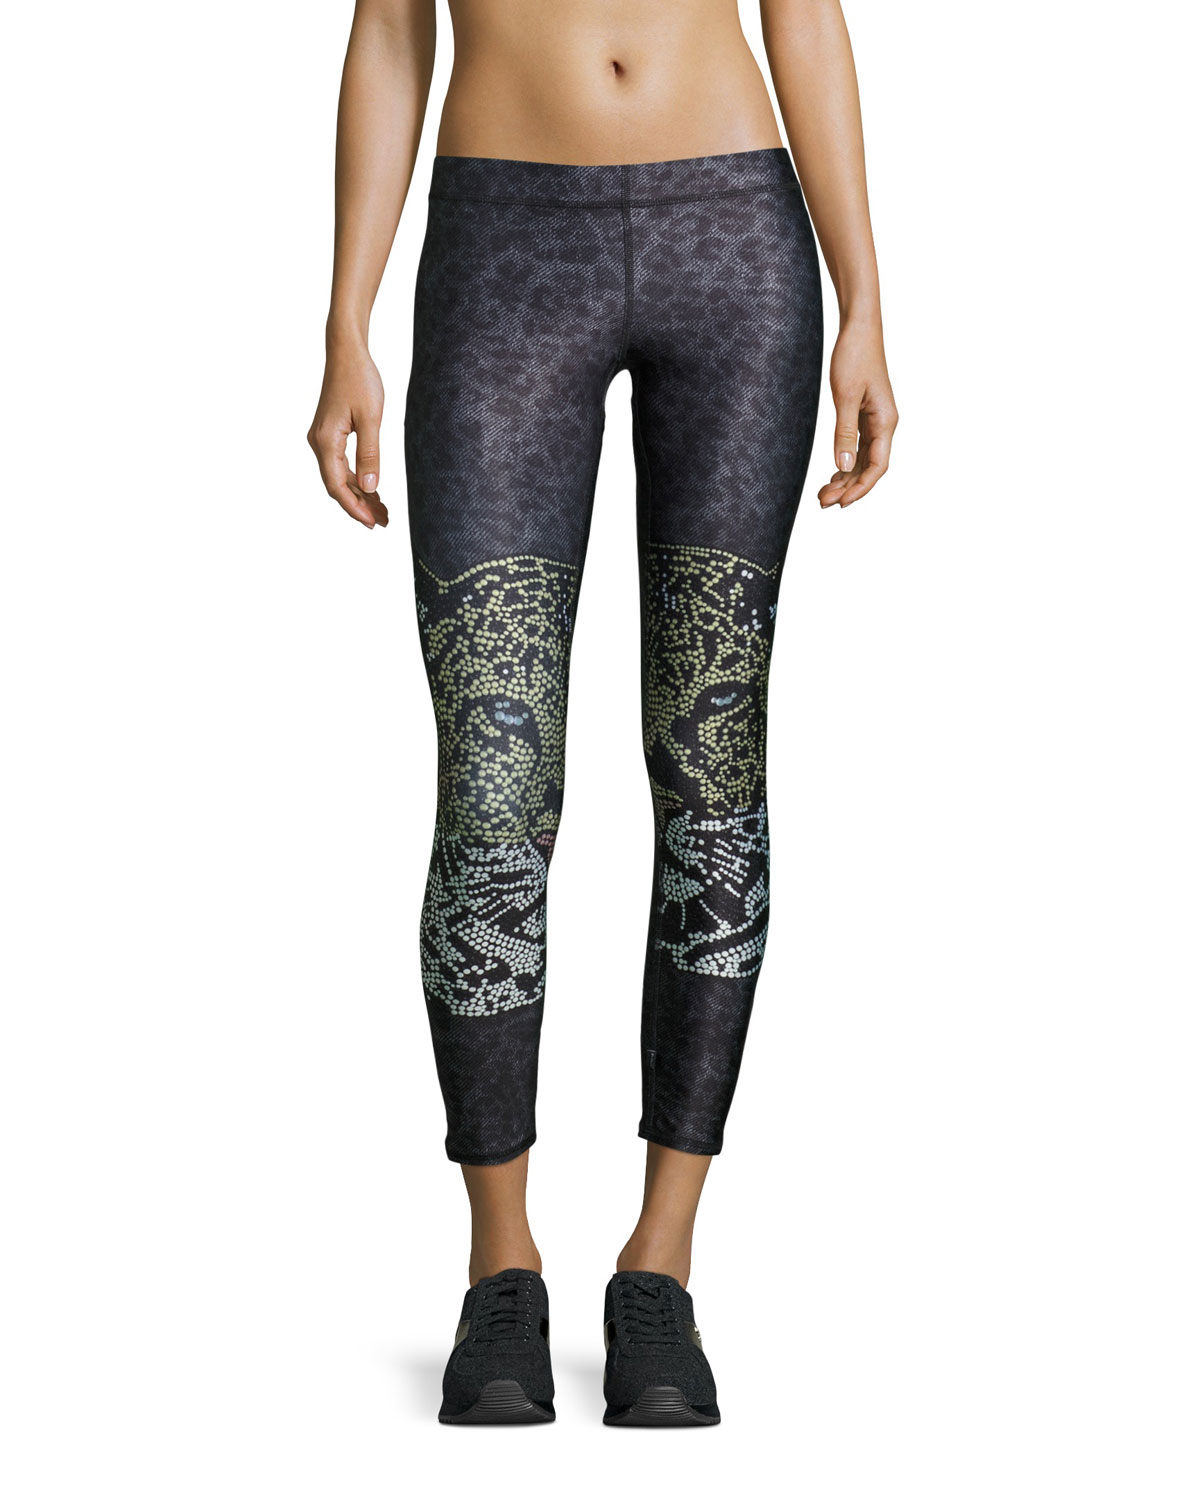 Crystal Leopard Performance Leggings